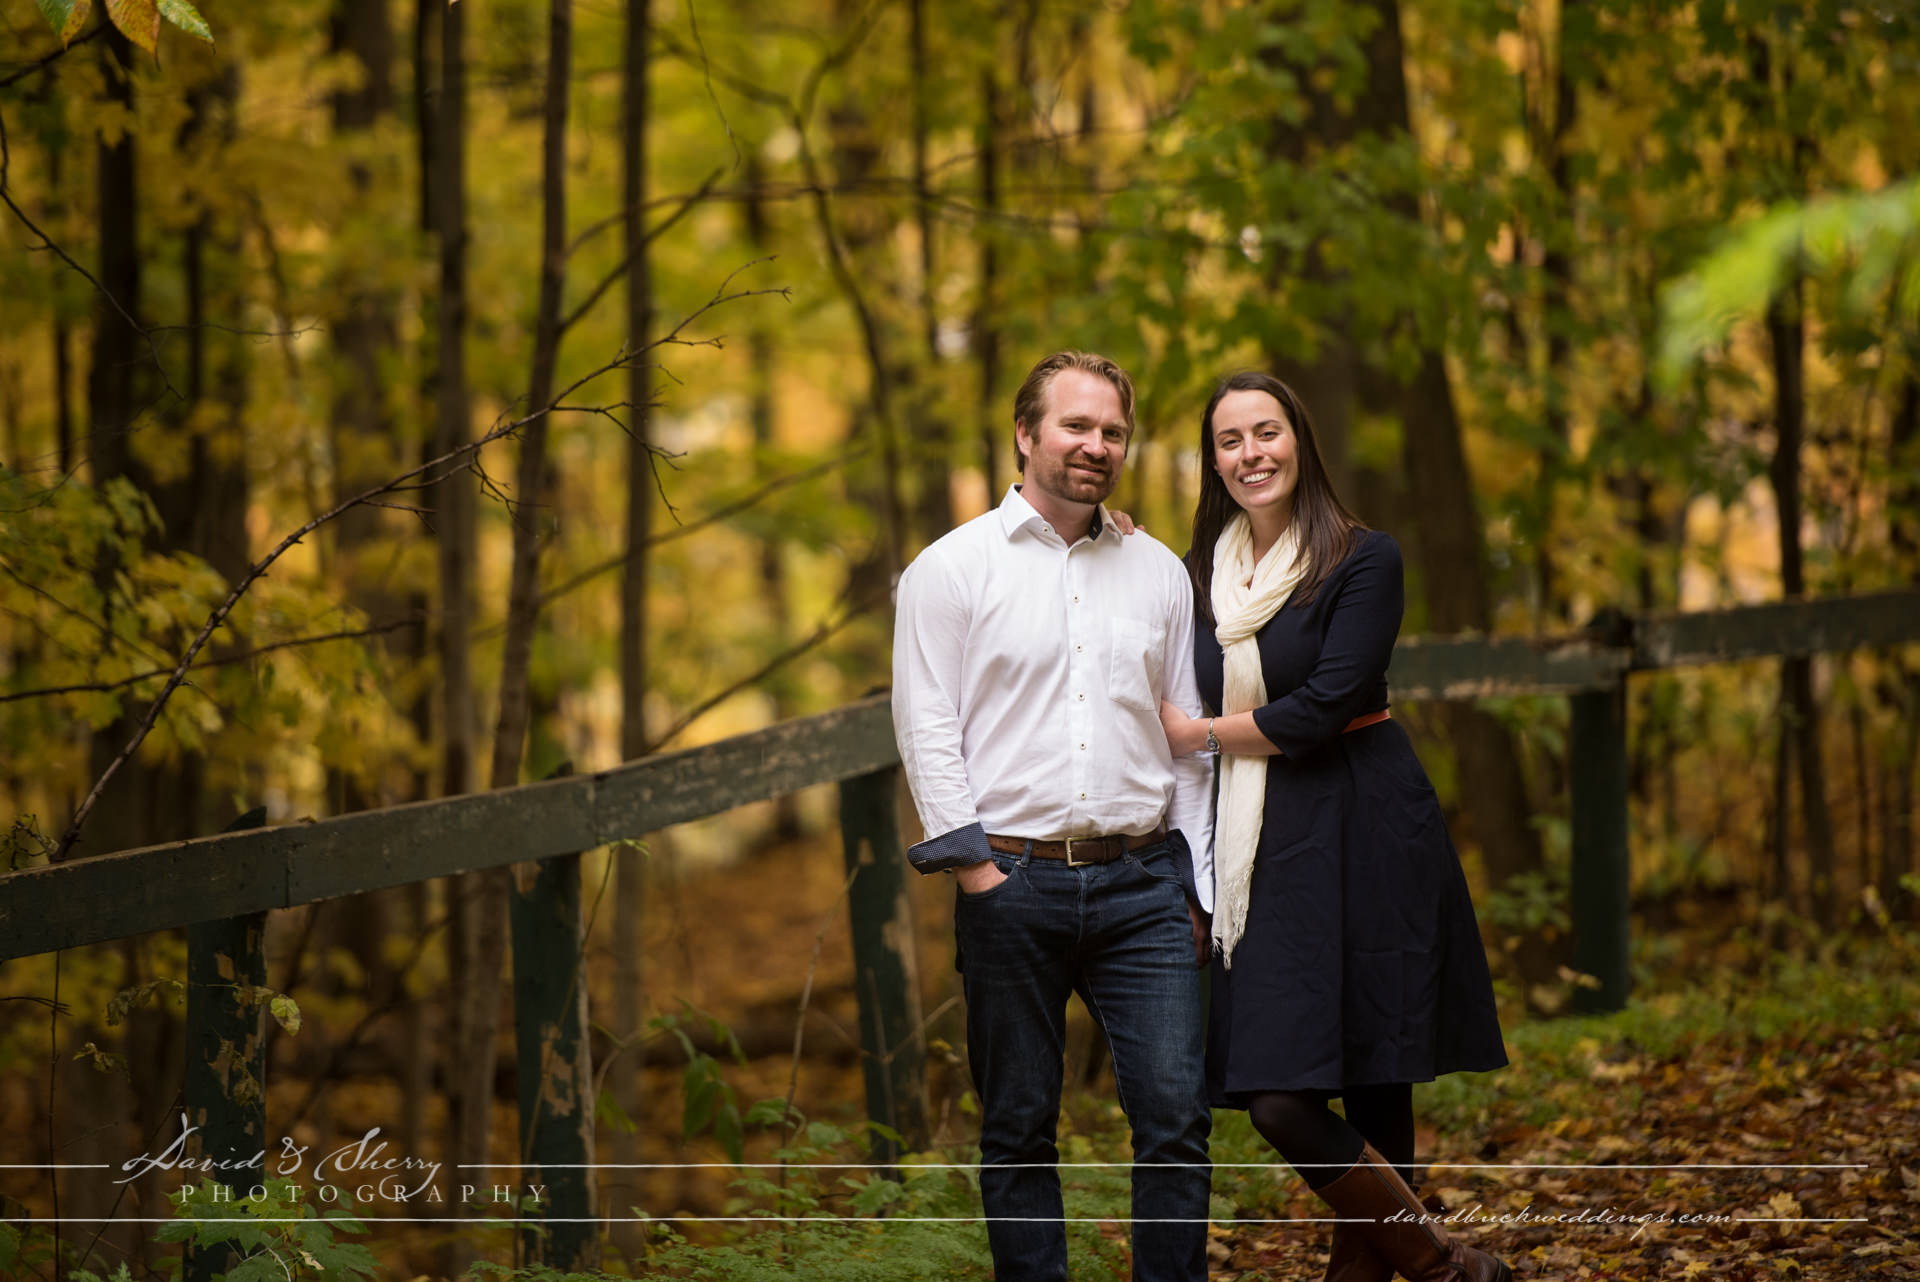 Thornbury_Heathcote_Engagement_Photos_006